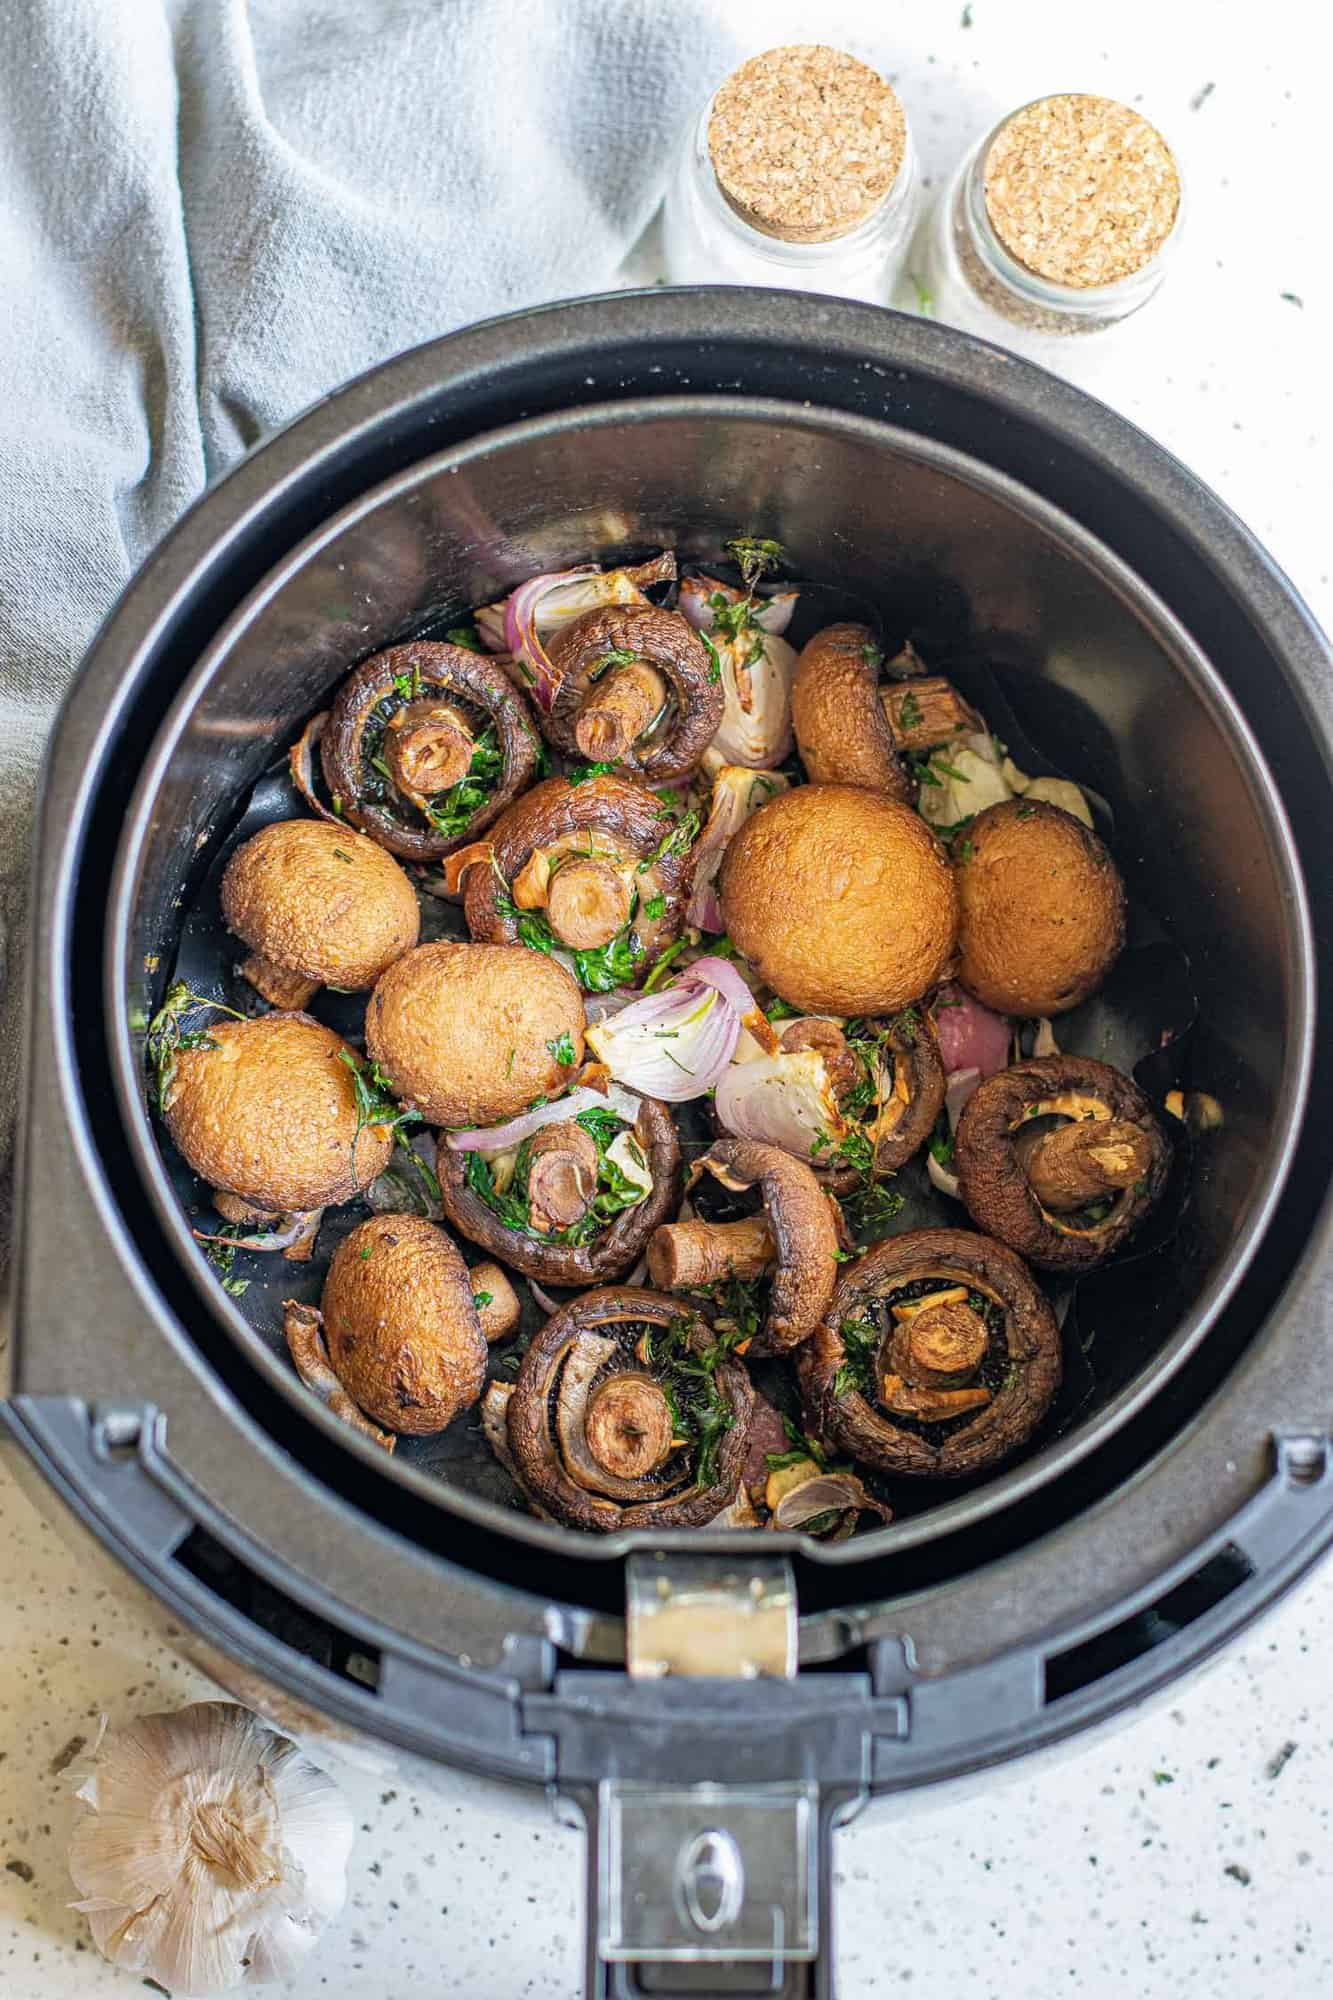 Cooked mushrooms in an air fryer.